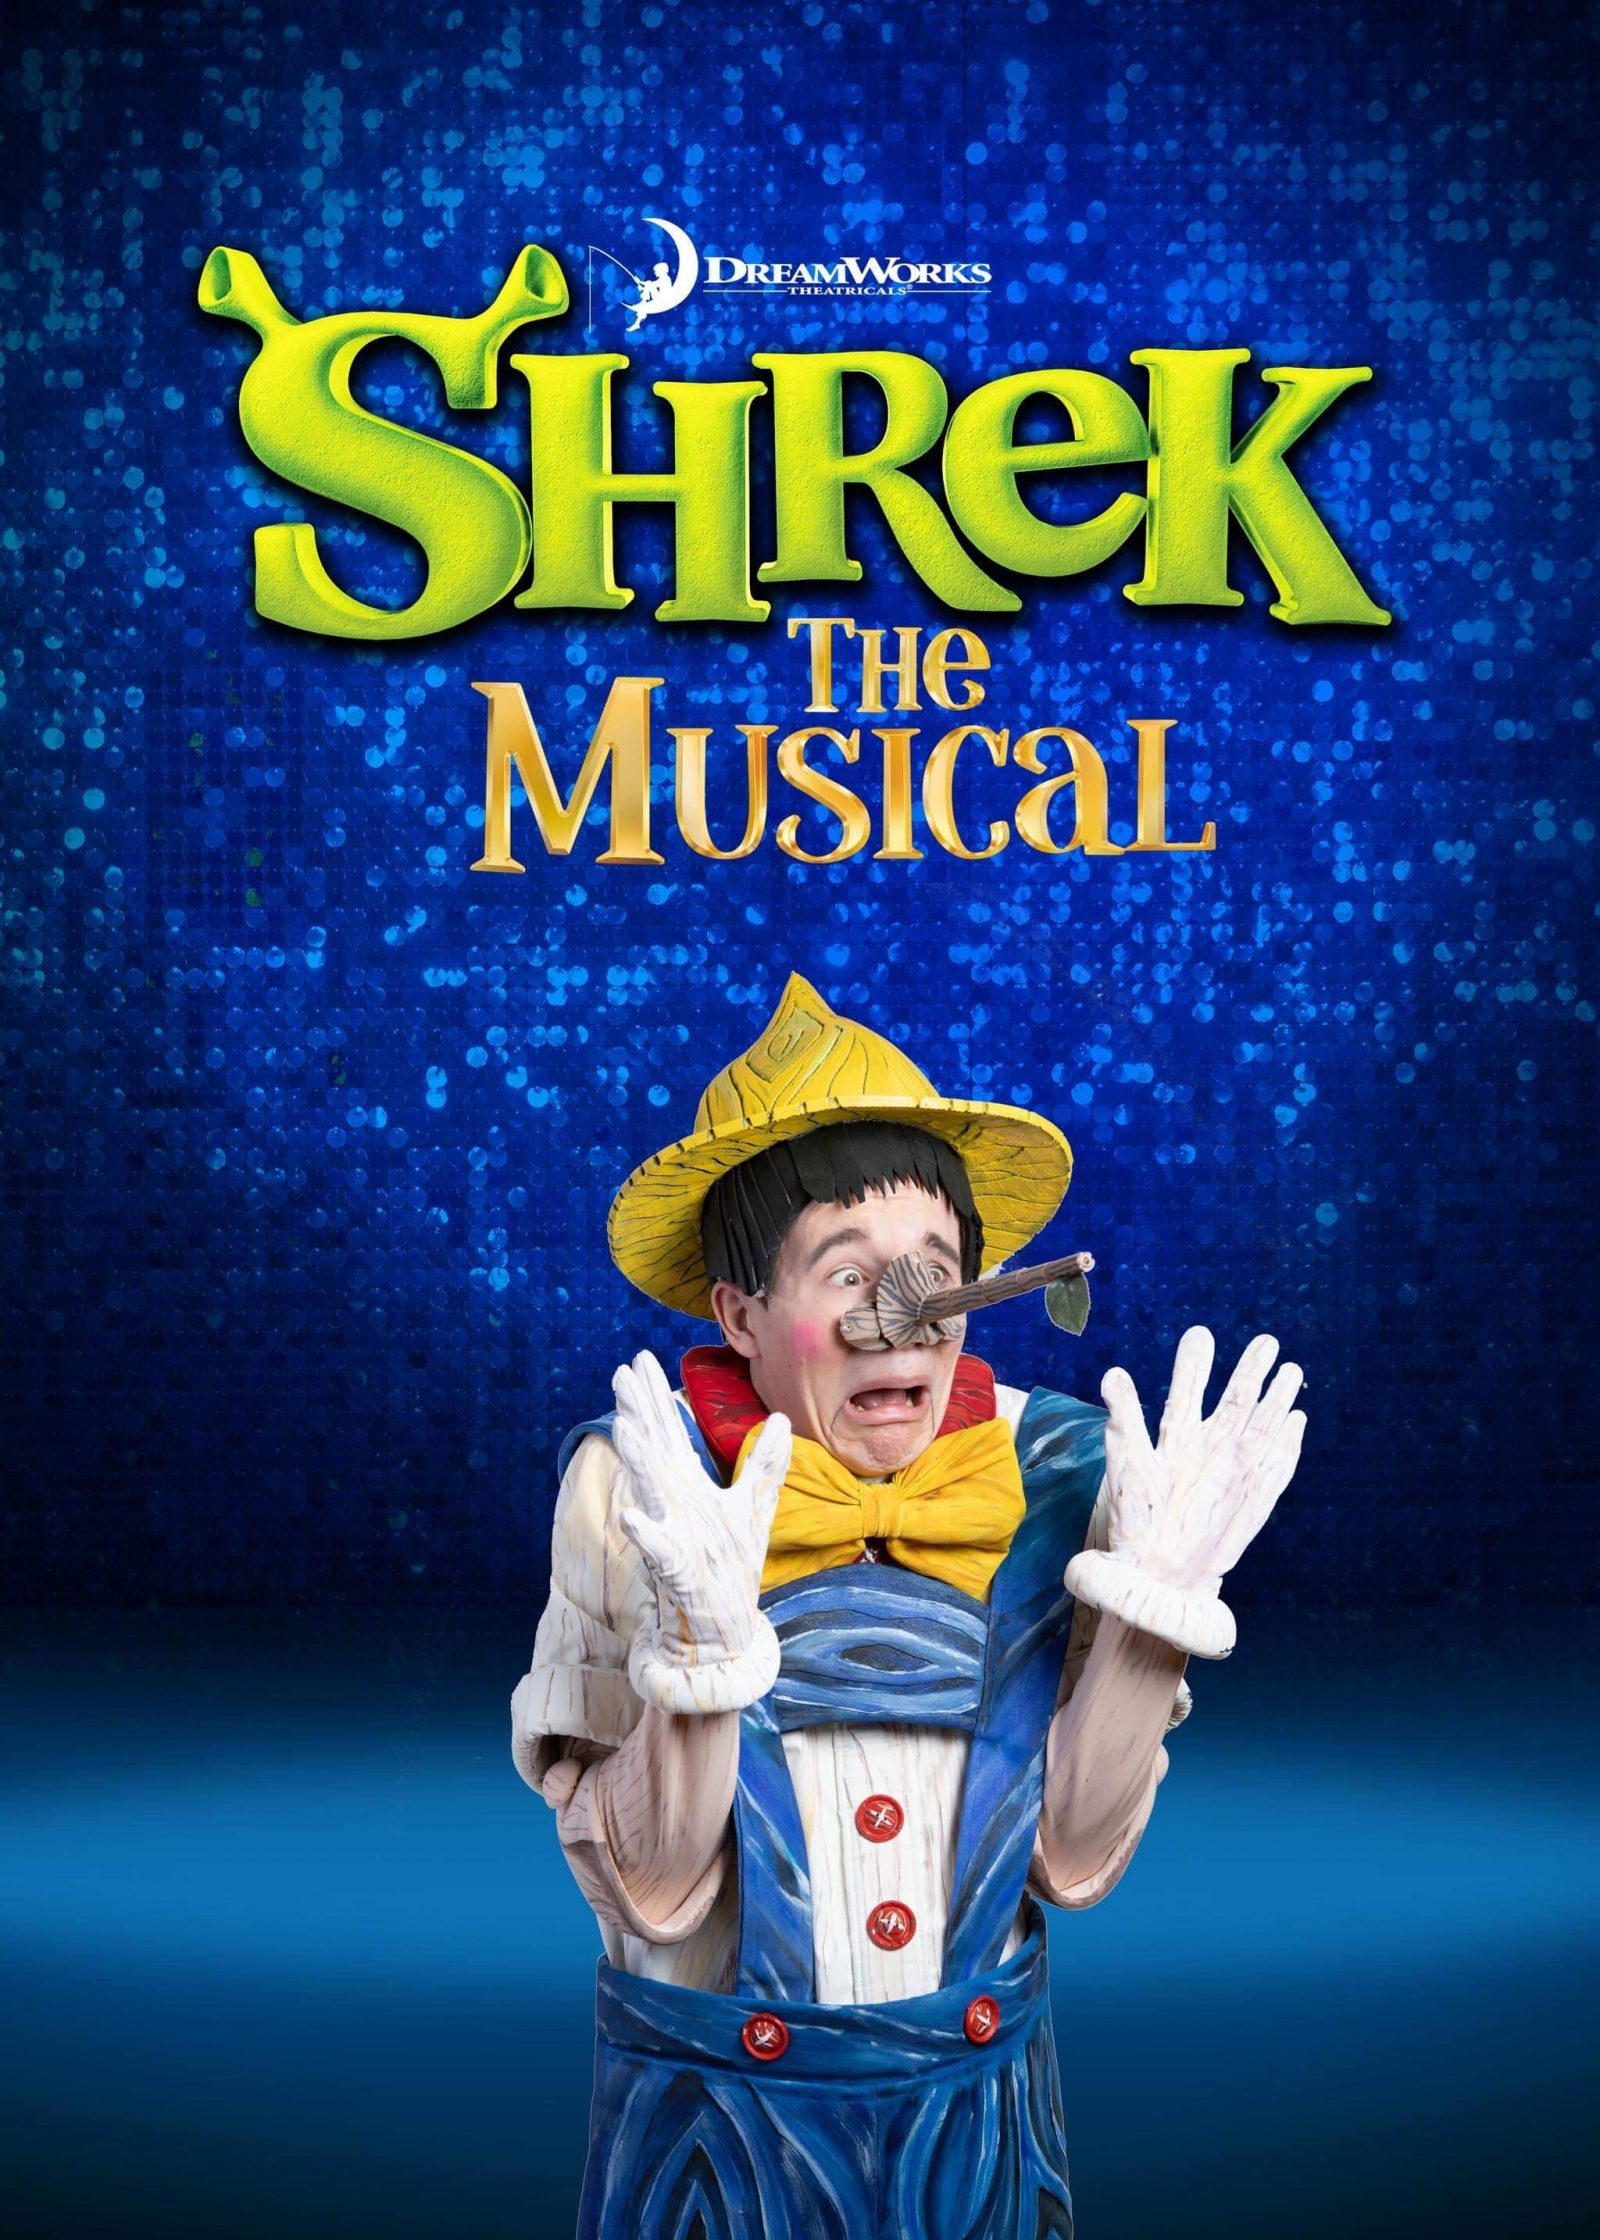 promotional shrek the musical poster featuring pinnochio holding hands up and looking shocked